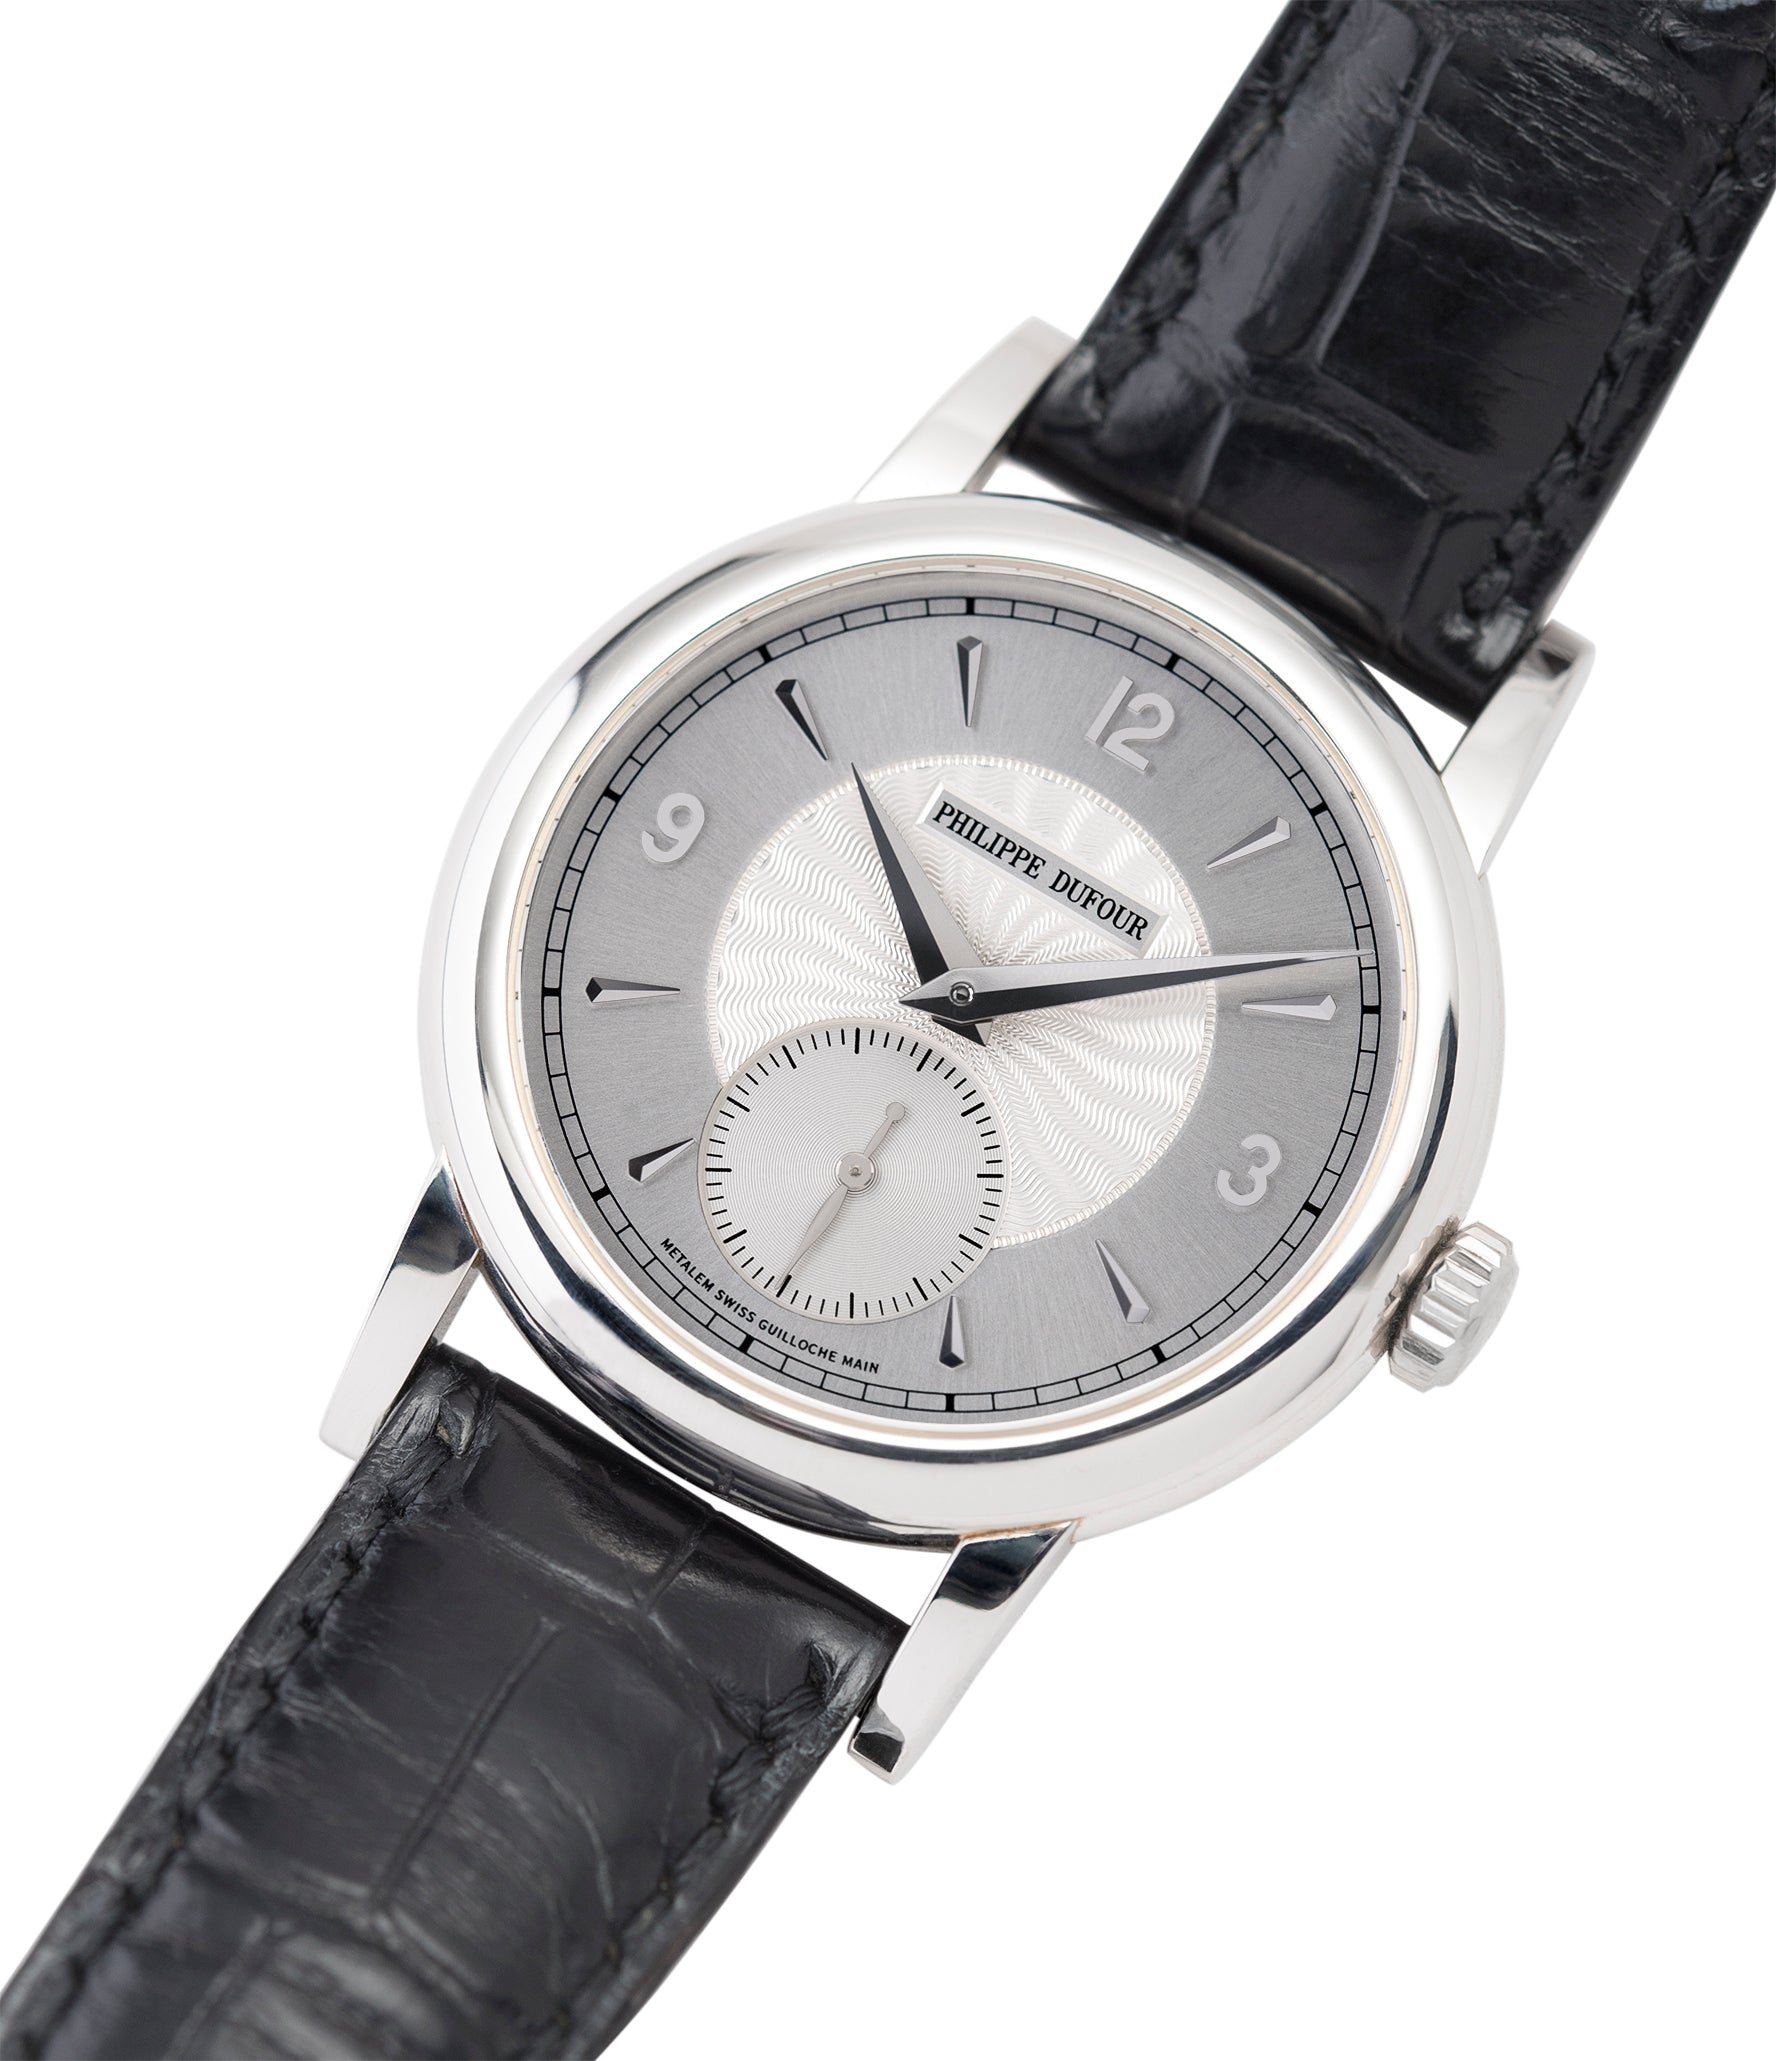 selling Philippe Dufour Simplicity platinum time-only dress watch for sale online at A Collected Man London UK approved specialist of preowned independent watchmakers